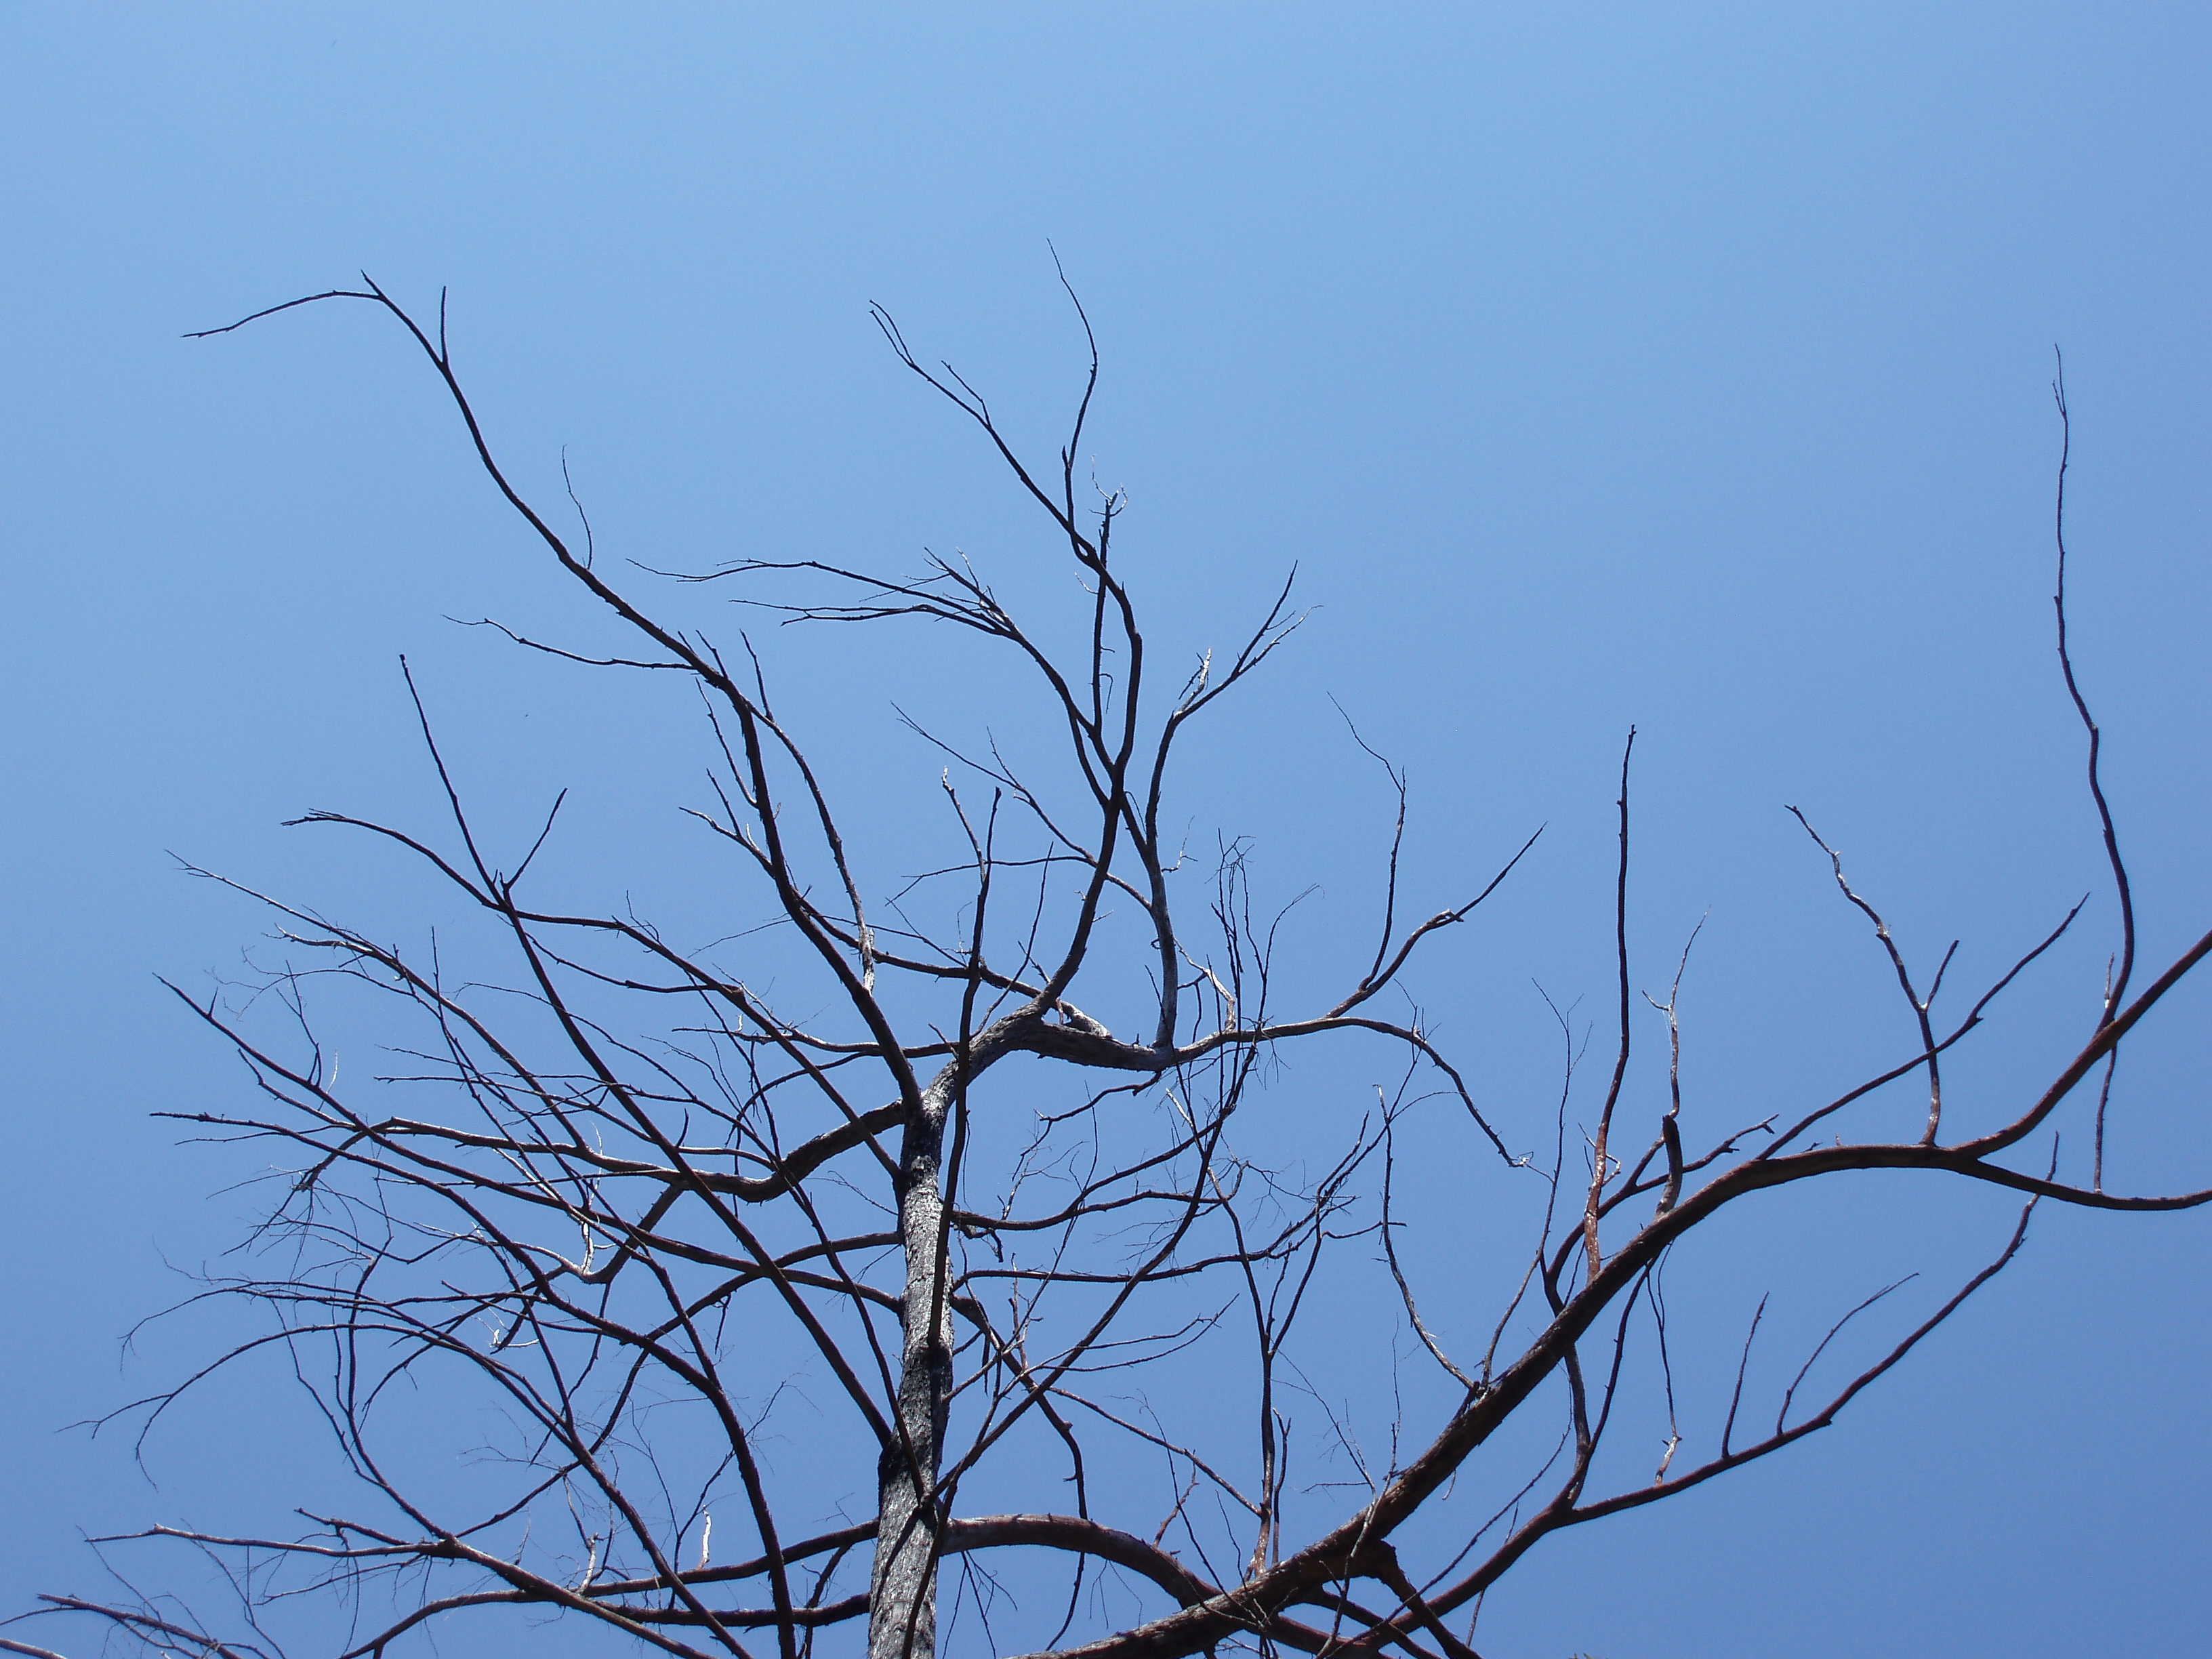 blue sky and moribund branches